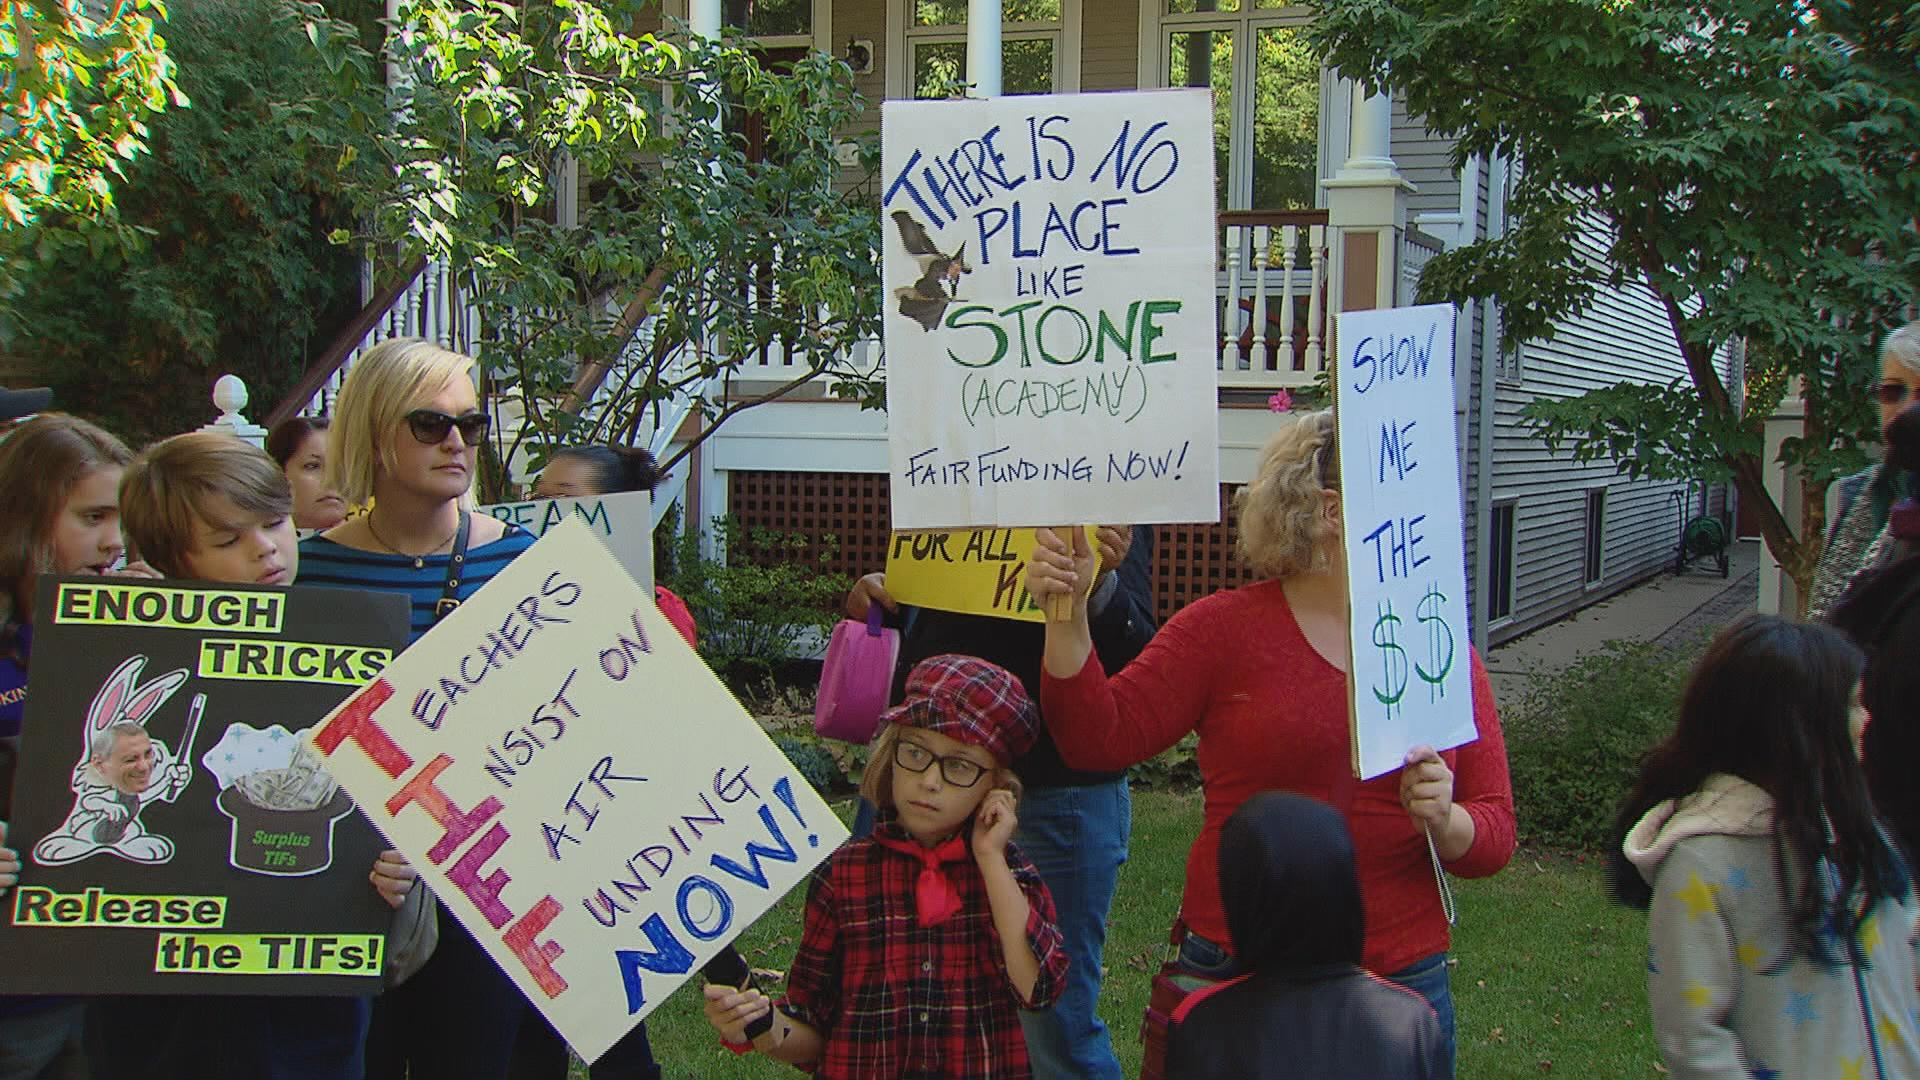 The group Parents 4 Teachers held a demonstration Monday morning in the Ravenswood neighborhood of Mayor Rahm Emanuel, calling on him to divert TIF funds to stabilize Chicago Public Schools funding.